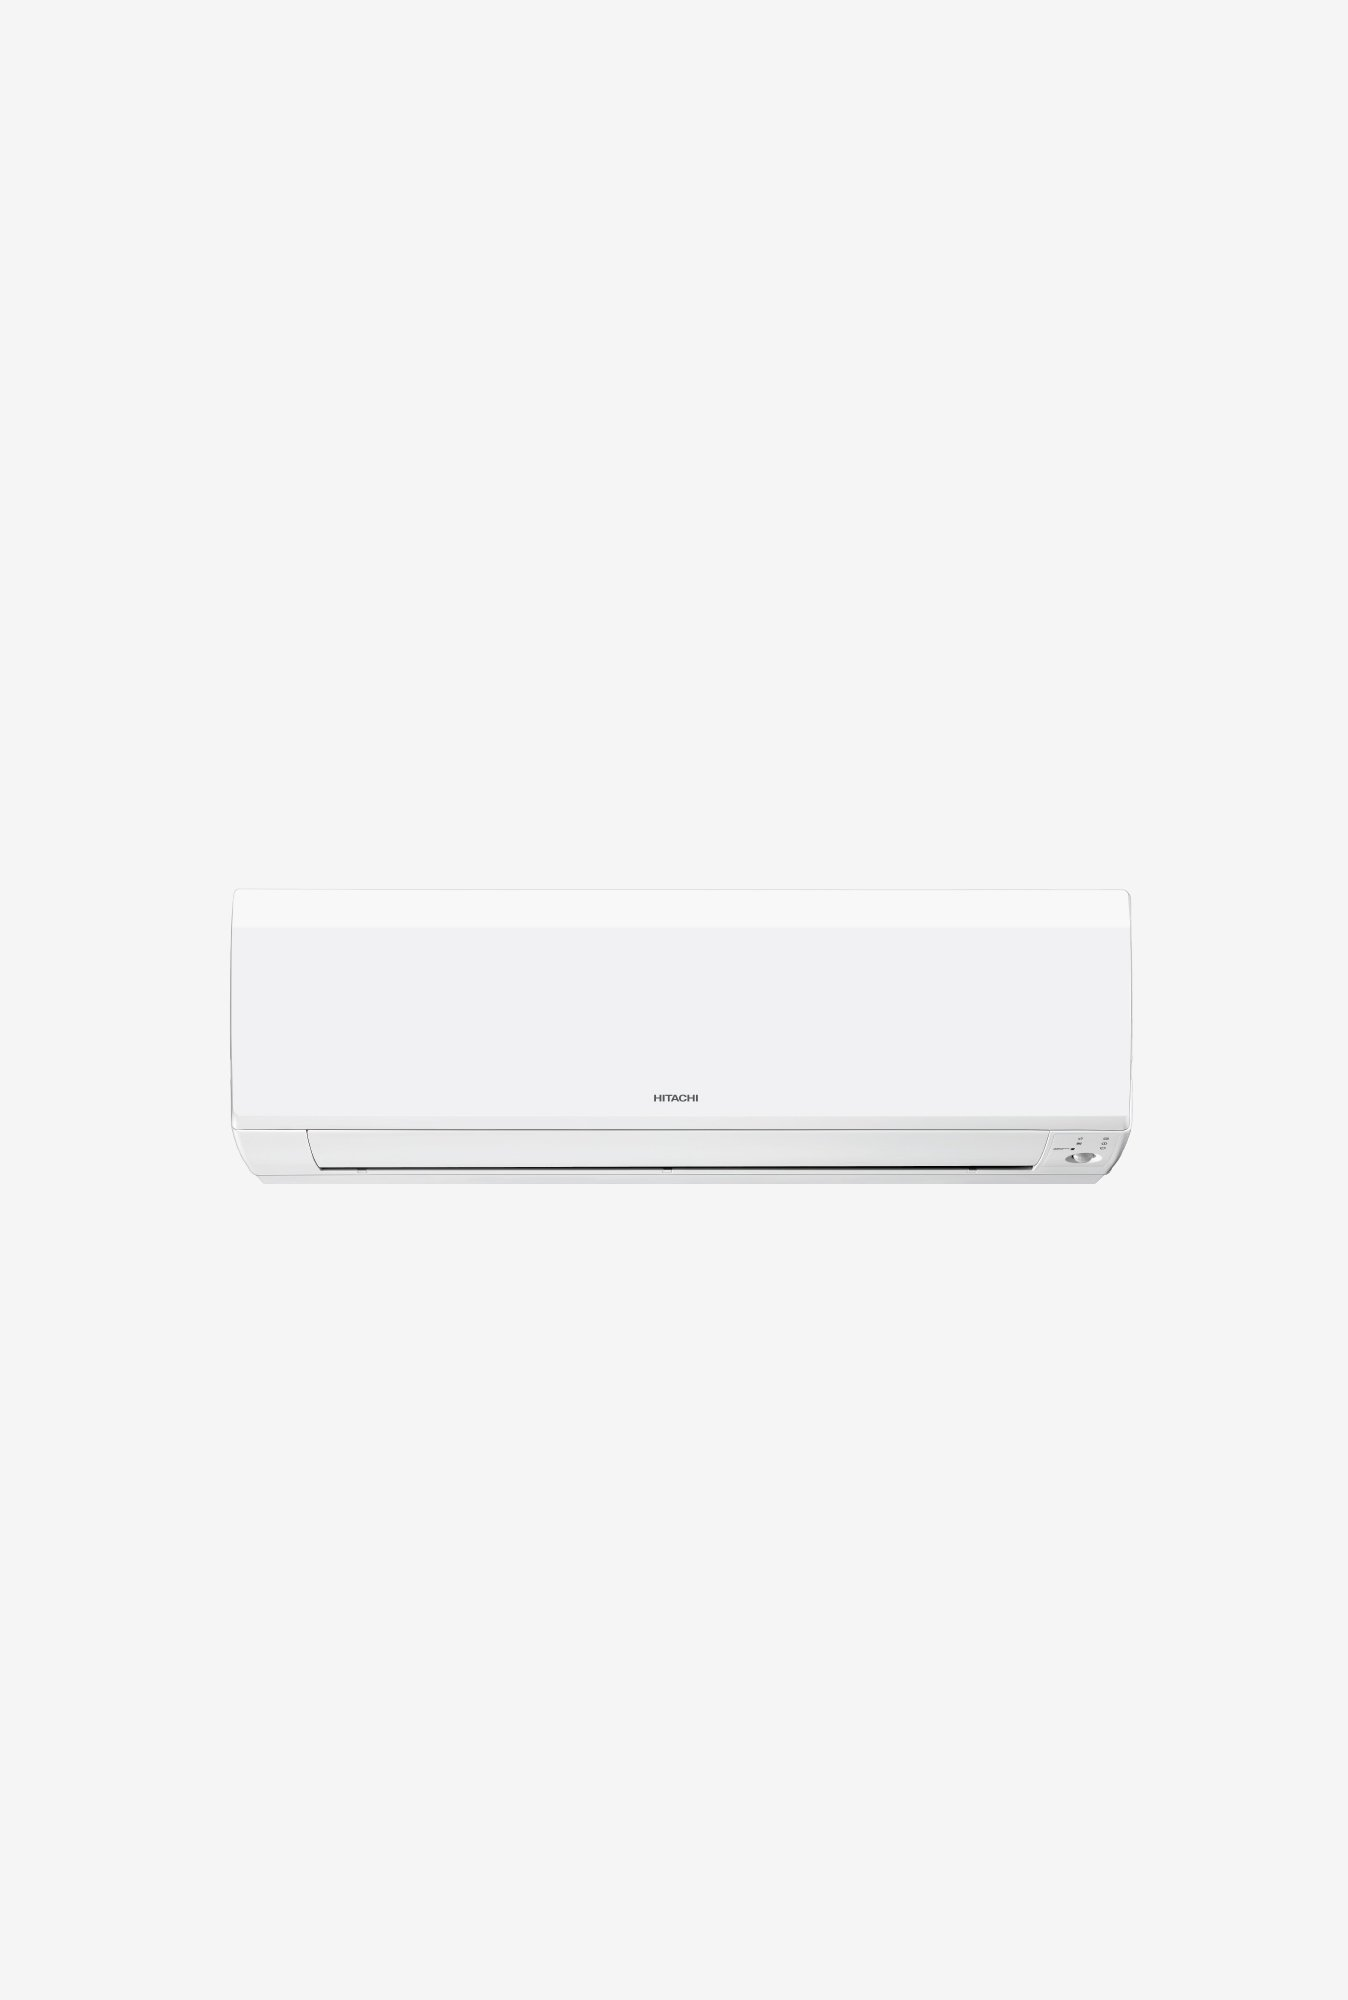 Hitachi Kashikoi 5400i 2 Ton Inverter Split AC White